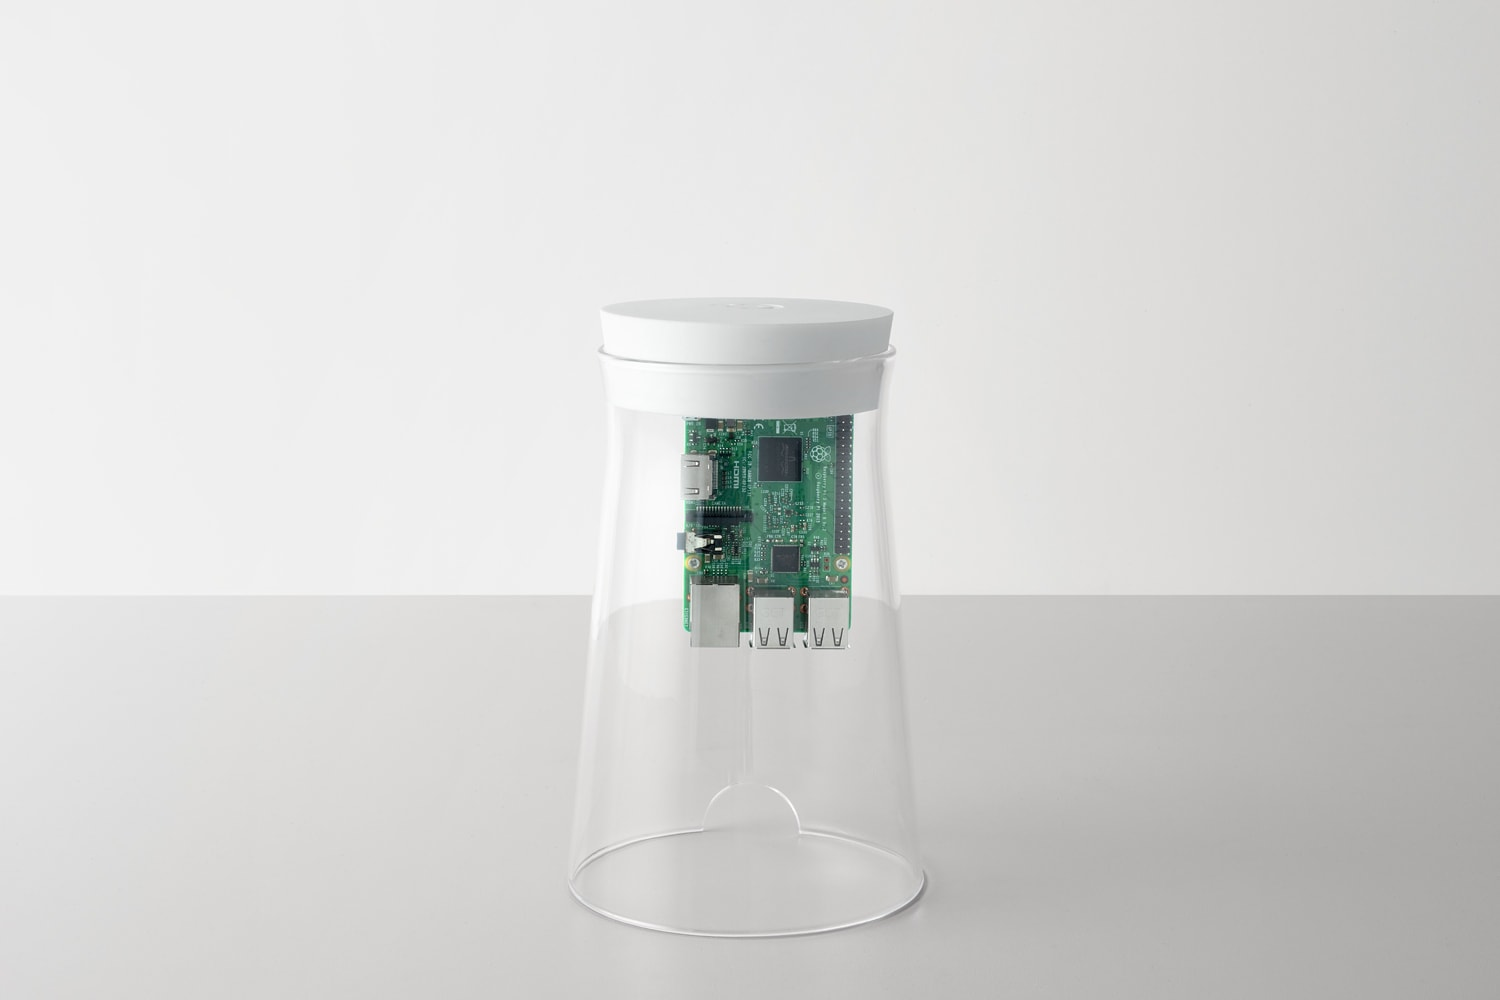 Front view of the DADI Founding Node. The components include; a glass casing with a white silicone top, attached to the top is a plastic component which has a Raspberry Pi circuit board mounted on to it.